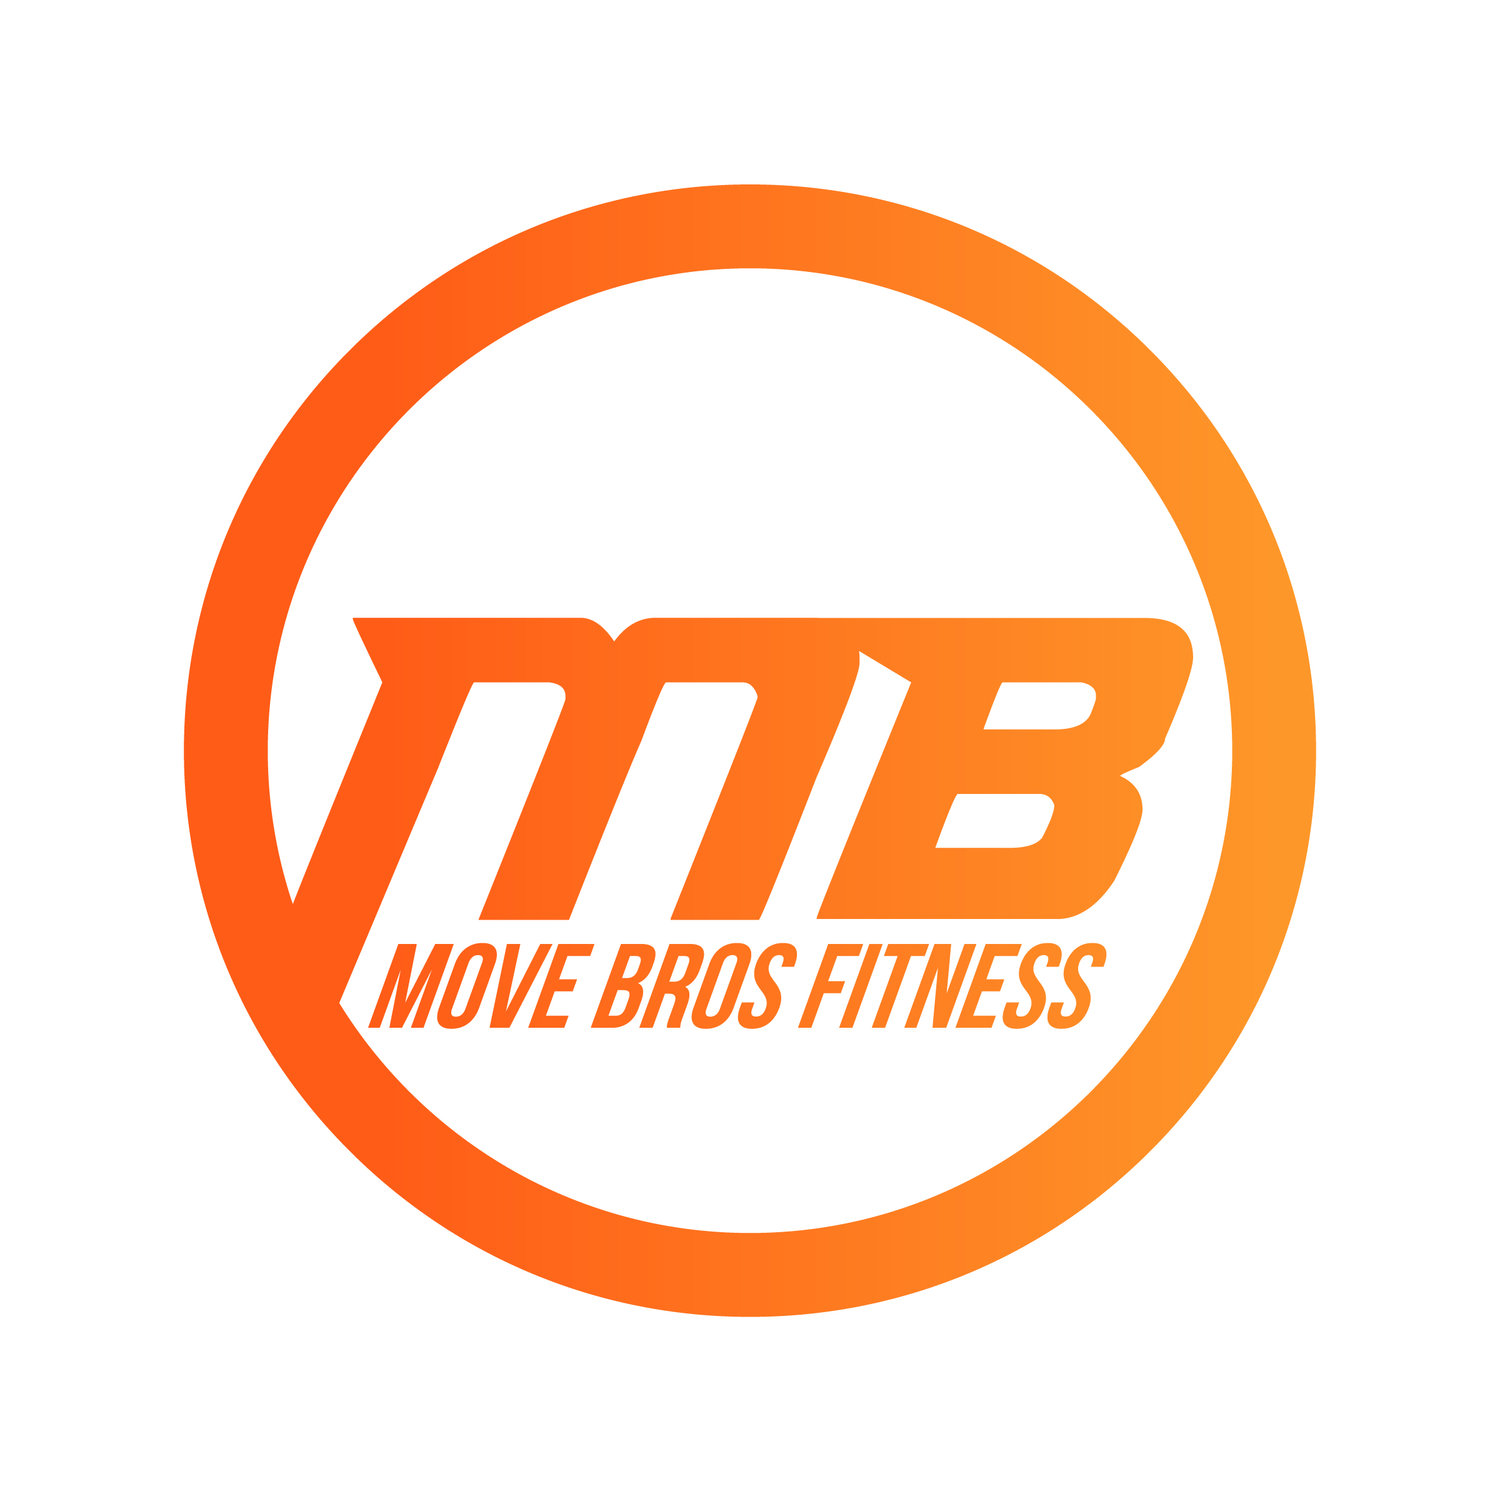 Move Bros Fitness